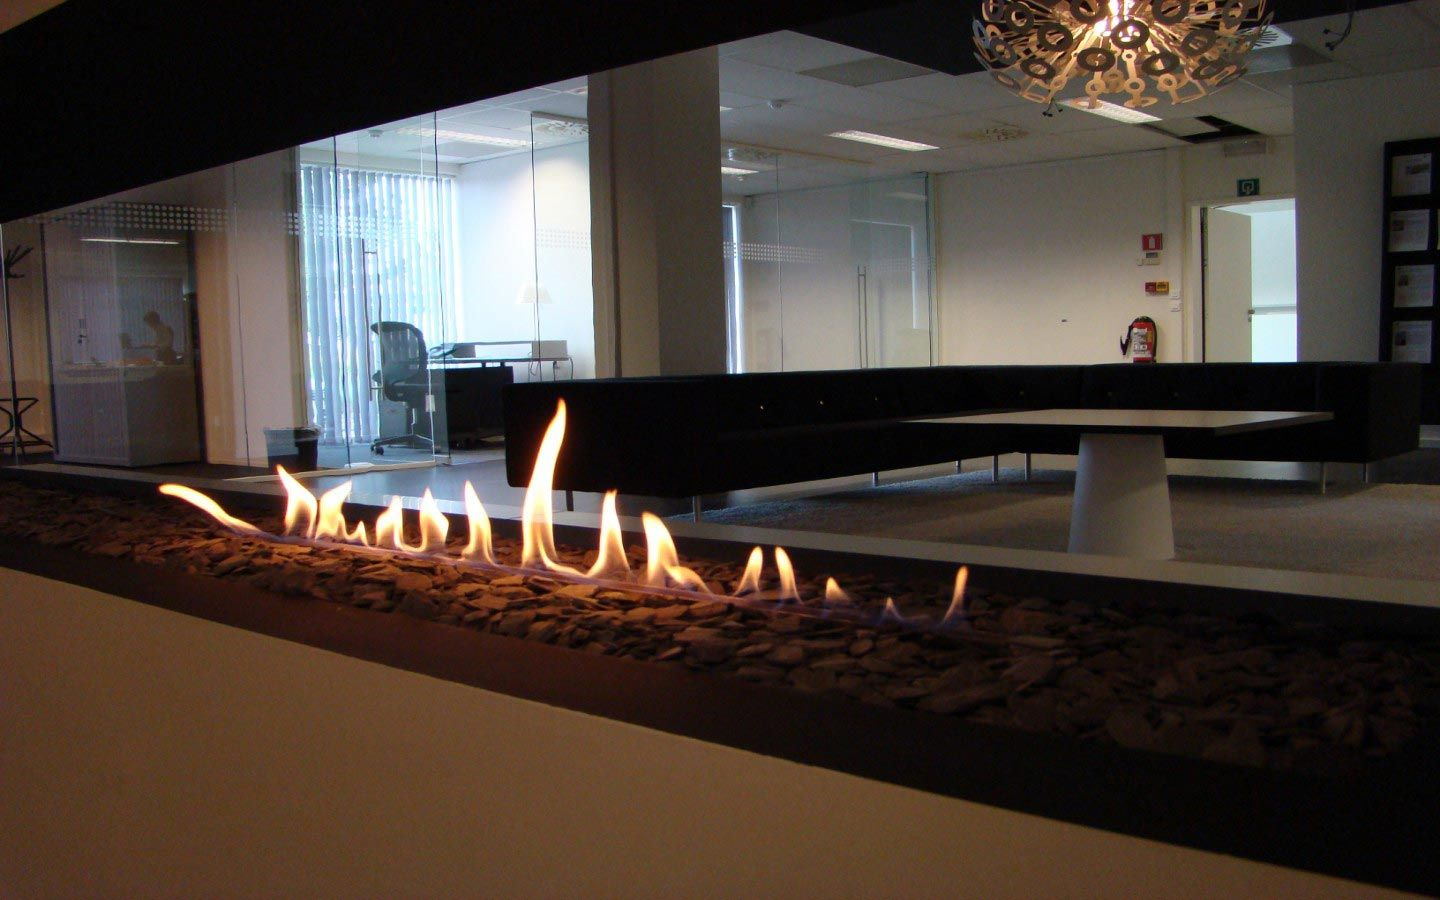 Decorativestonebioethanolfireplace  This type of